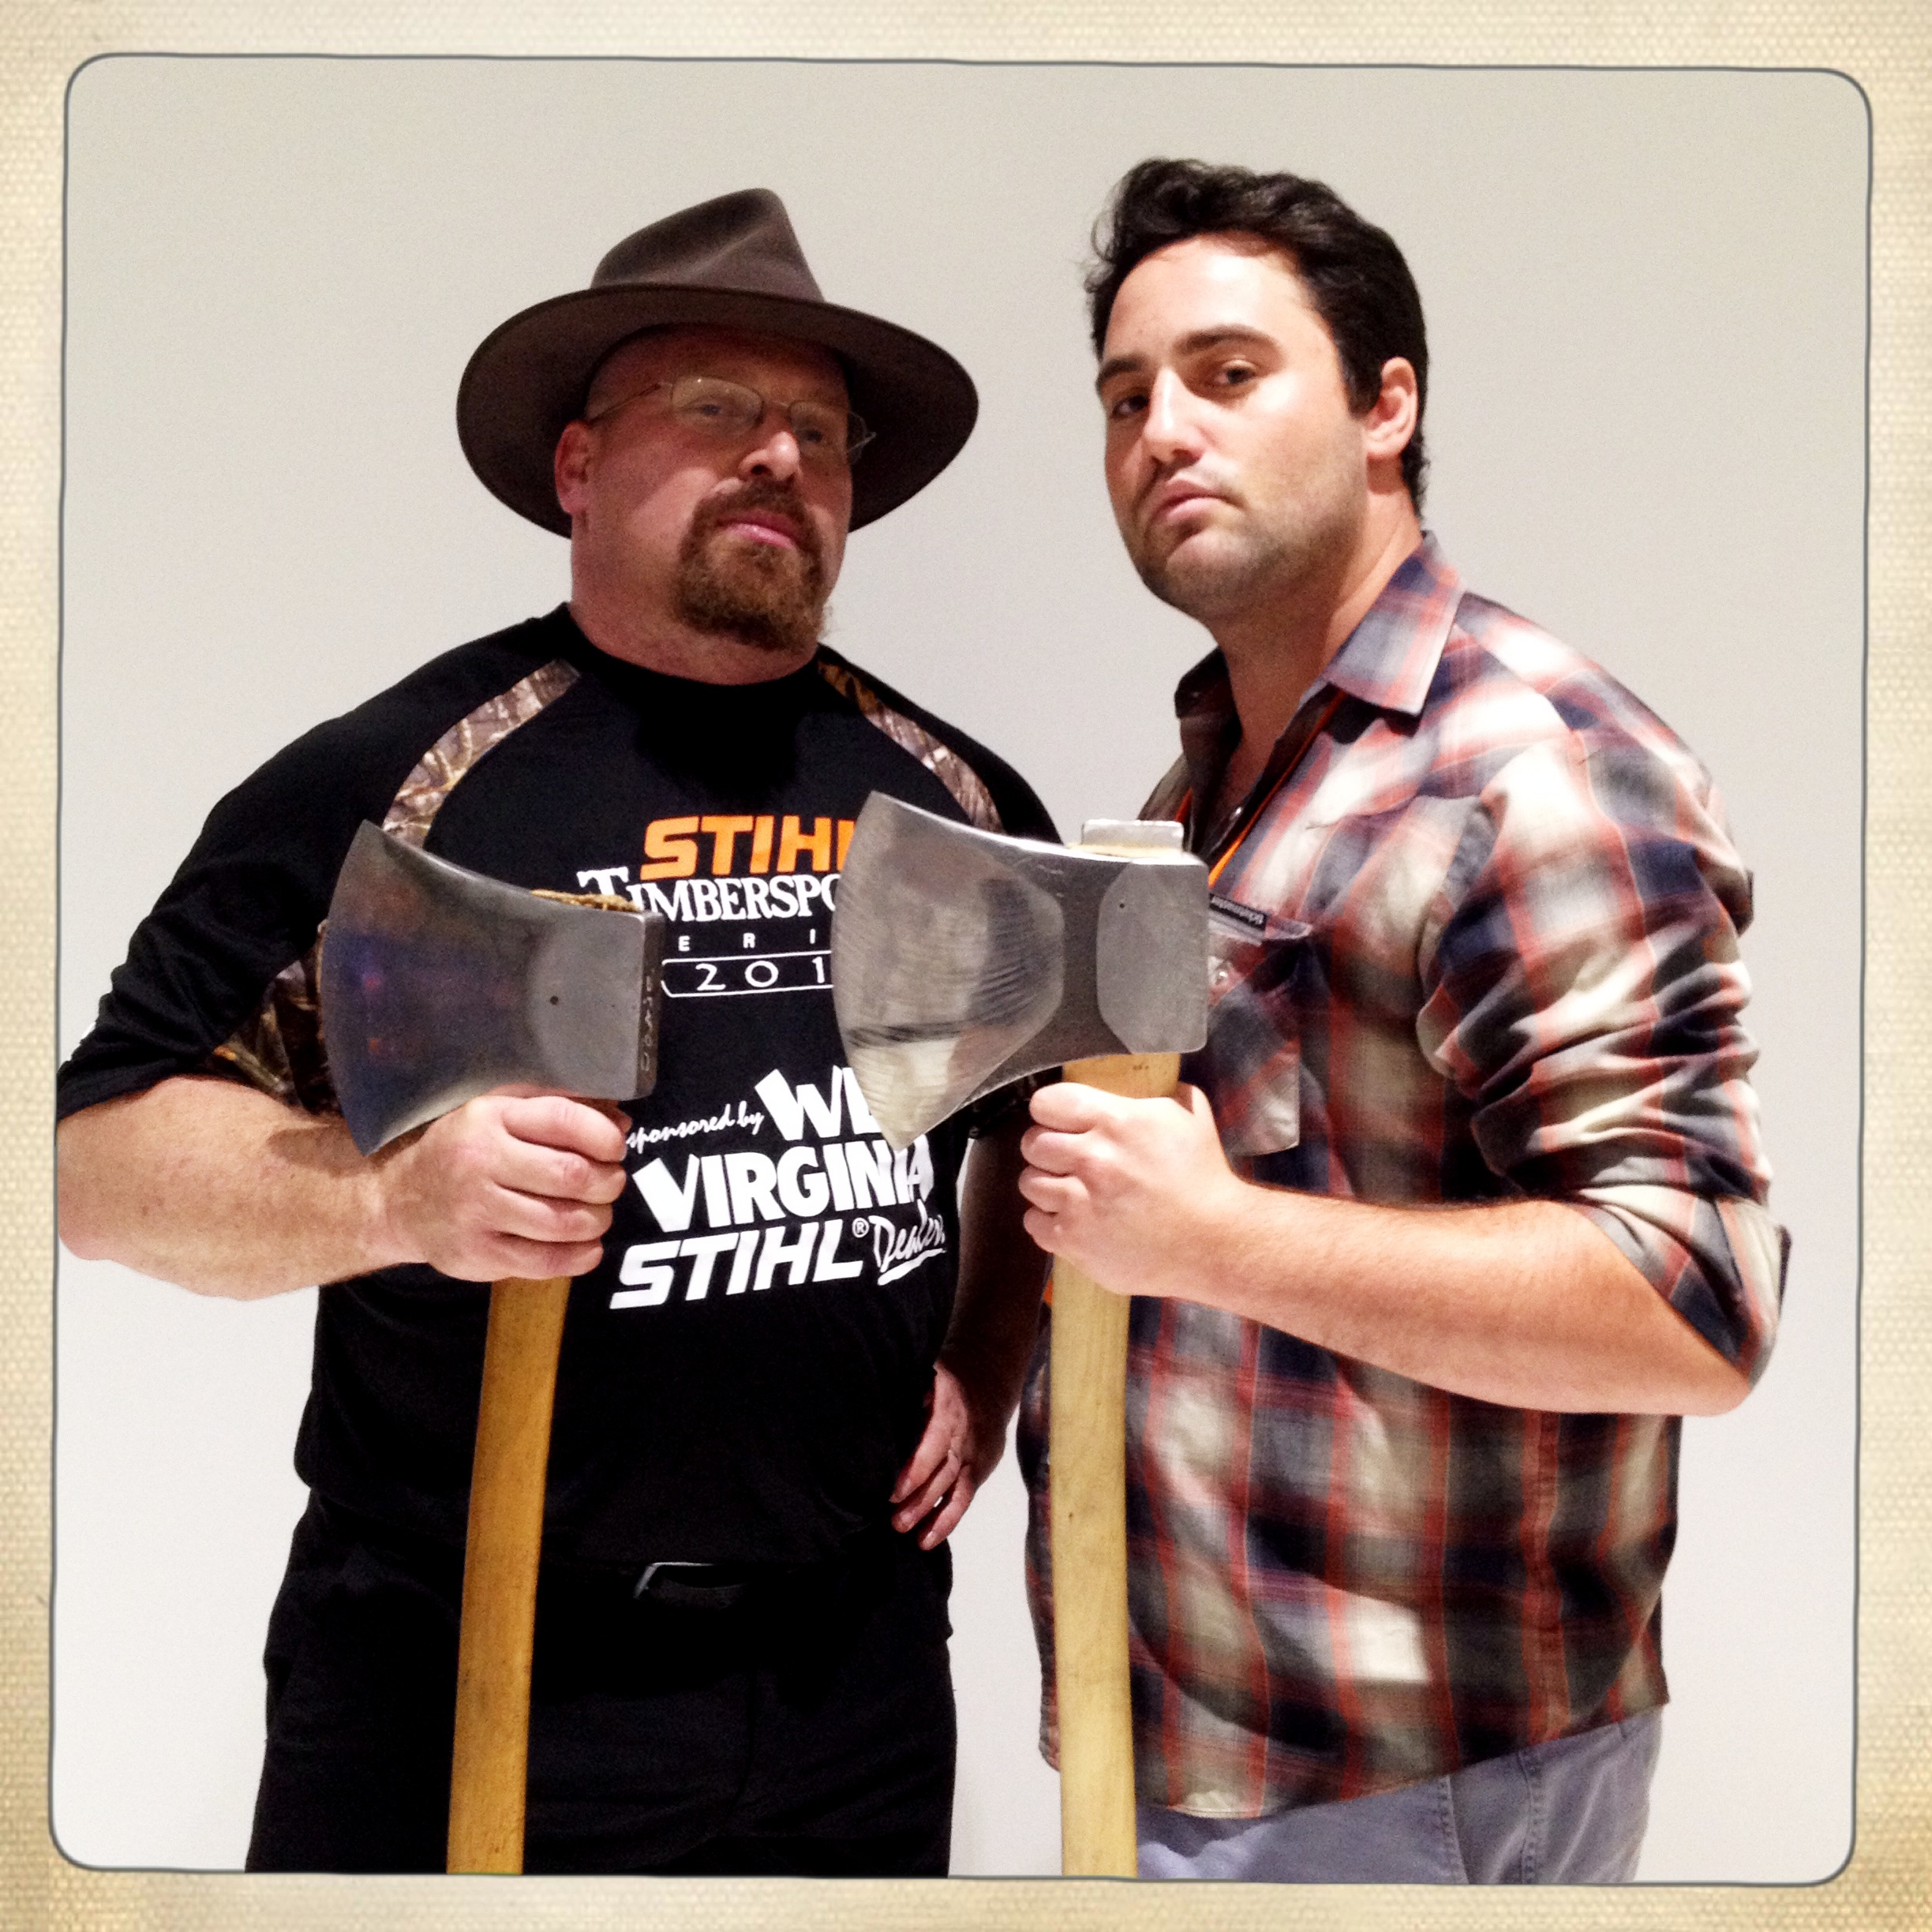 Covering the STIHL Timbersports Series for National Geographic. At least the shirt is appropriate for this photo.